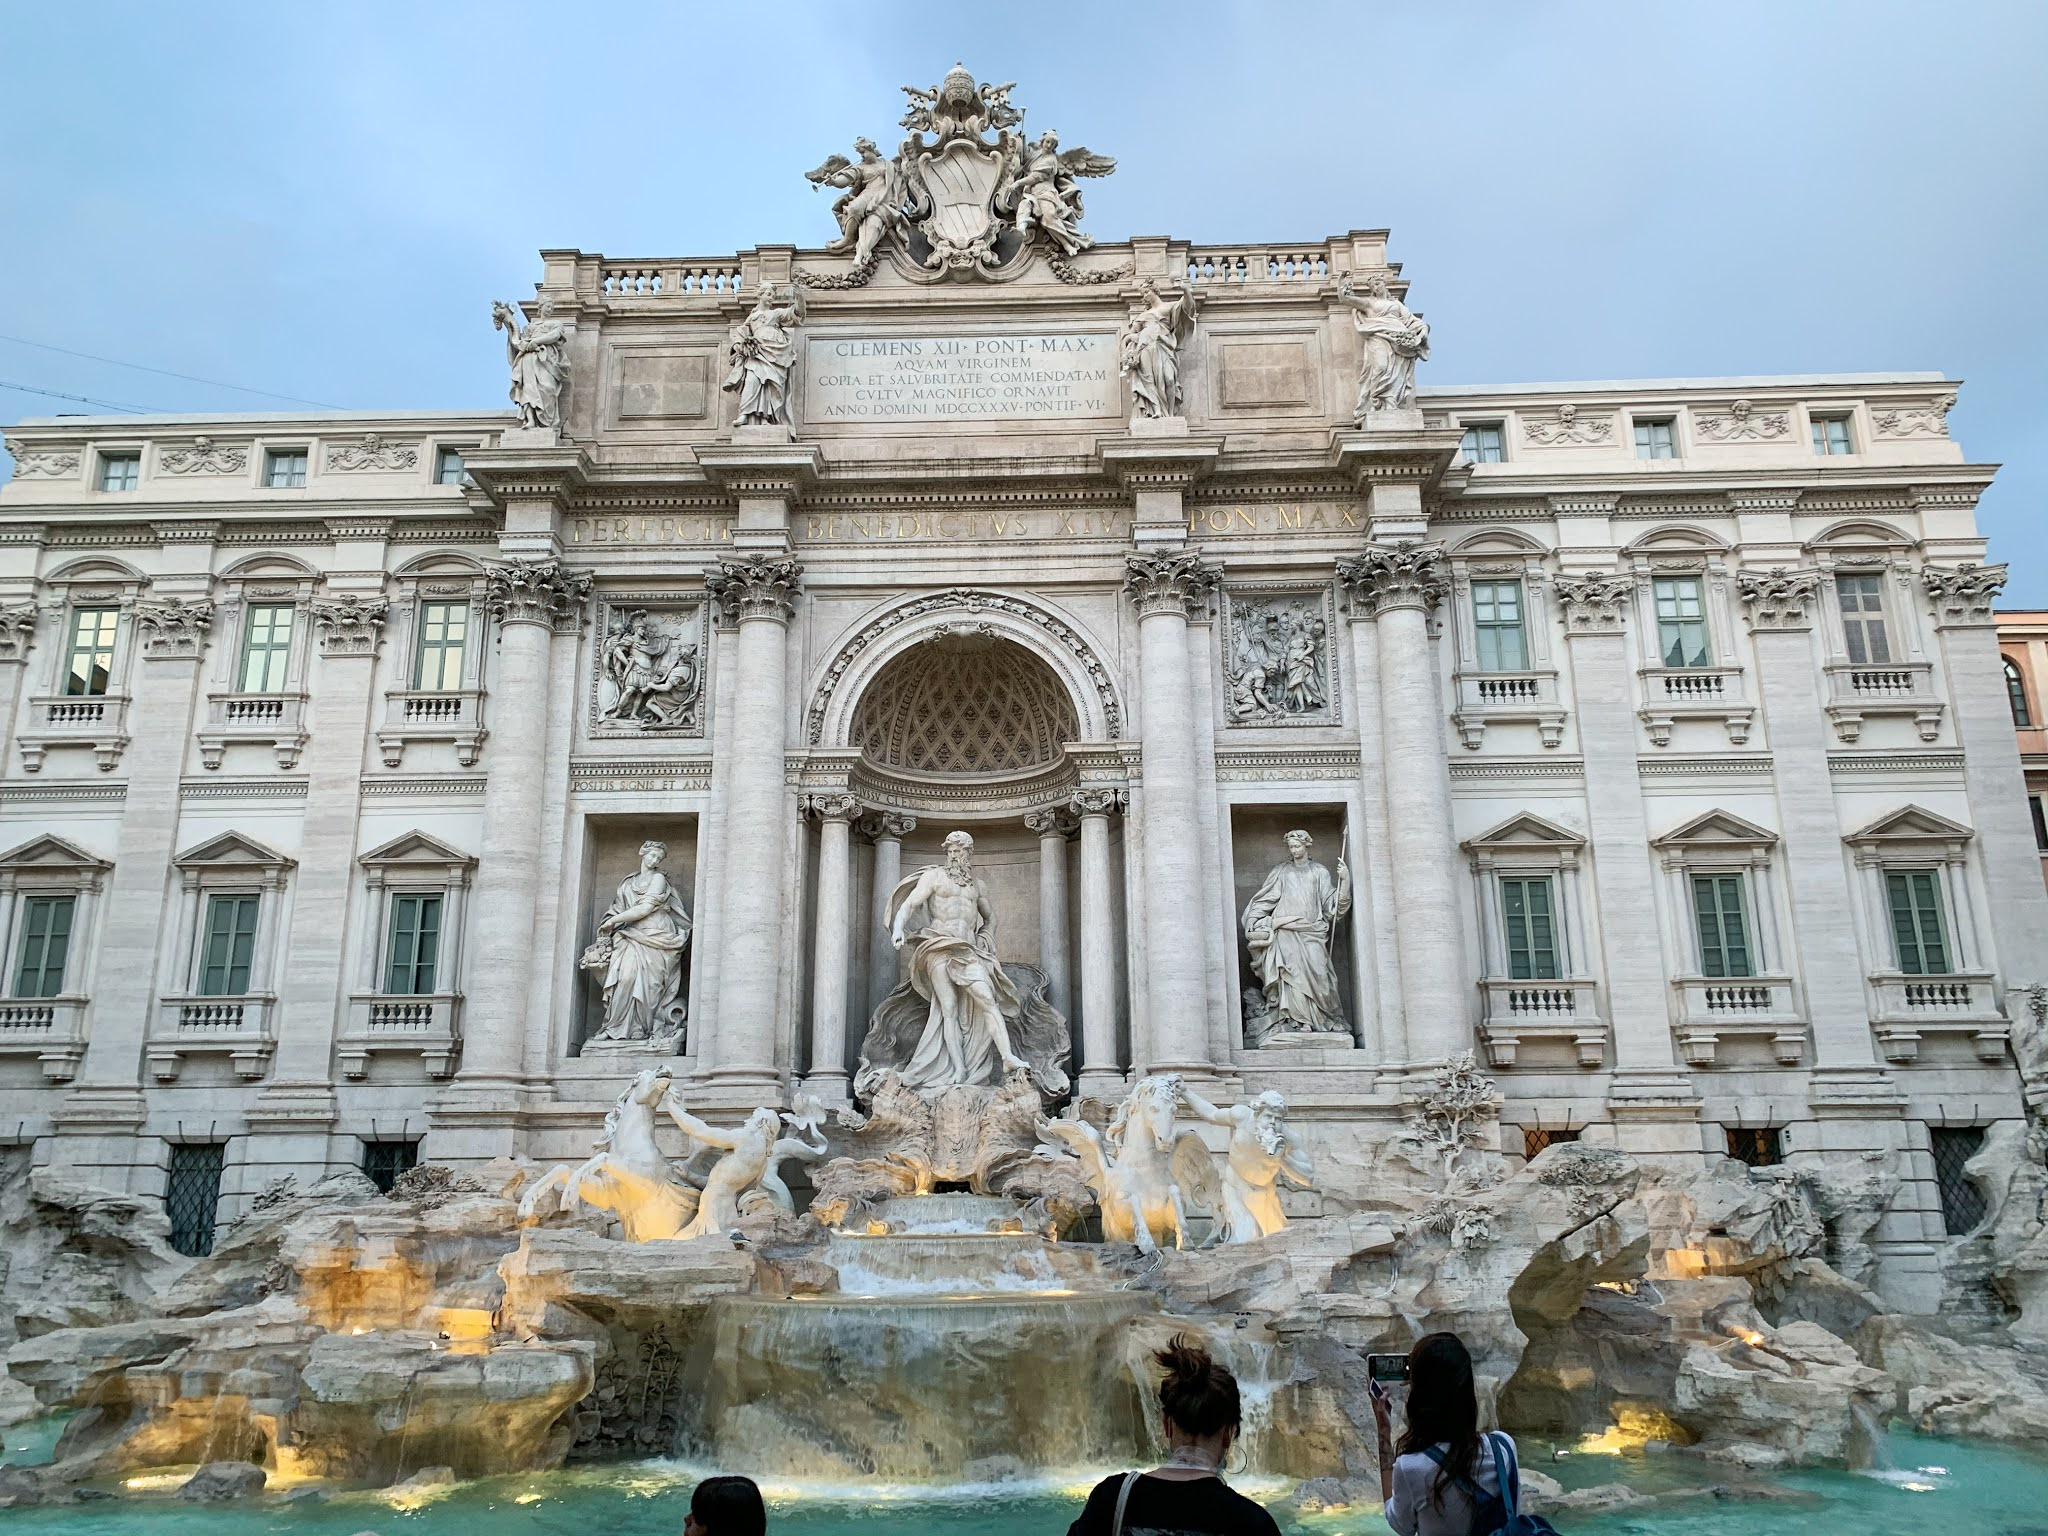 Trevi Fountain - The most beautiful fountain in Rome